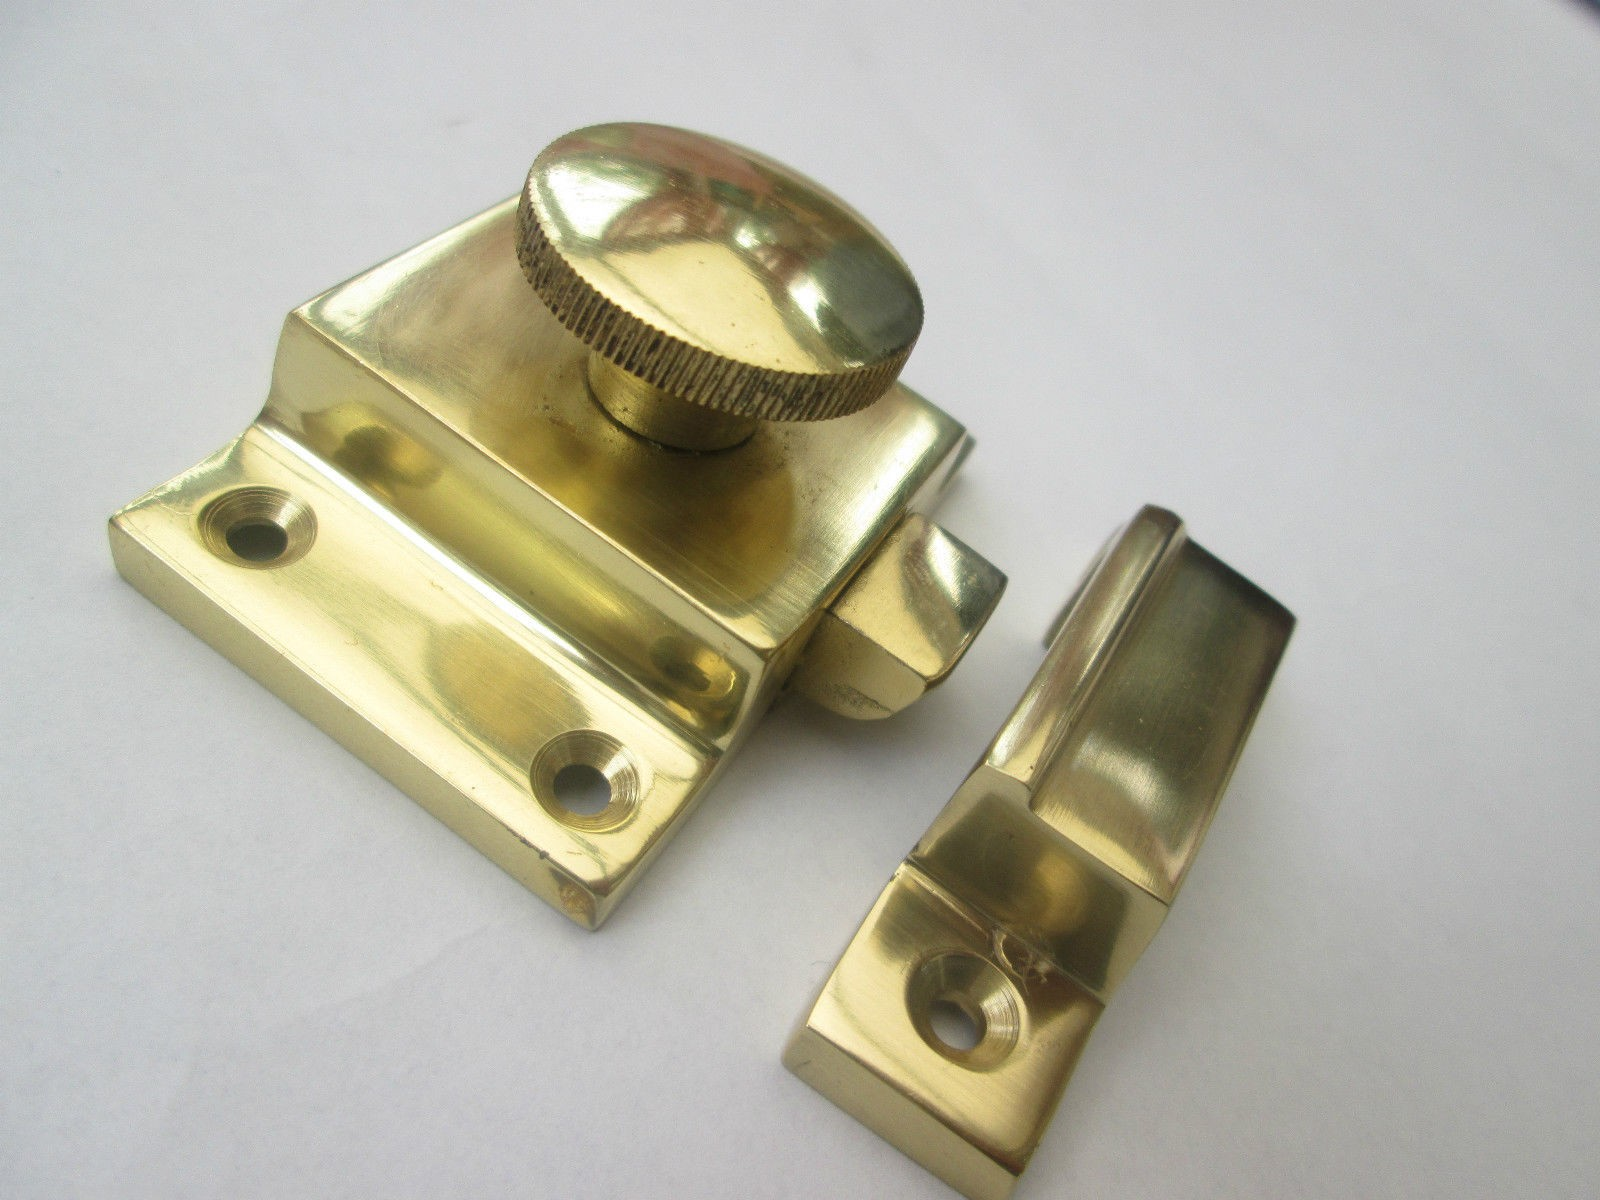 Solid brass cabinet thumb turn latch lock ironmongery world for Door lock latch